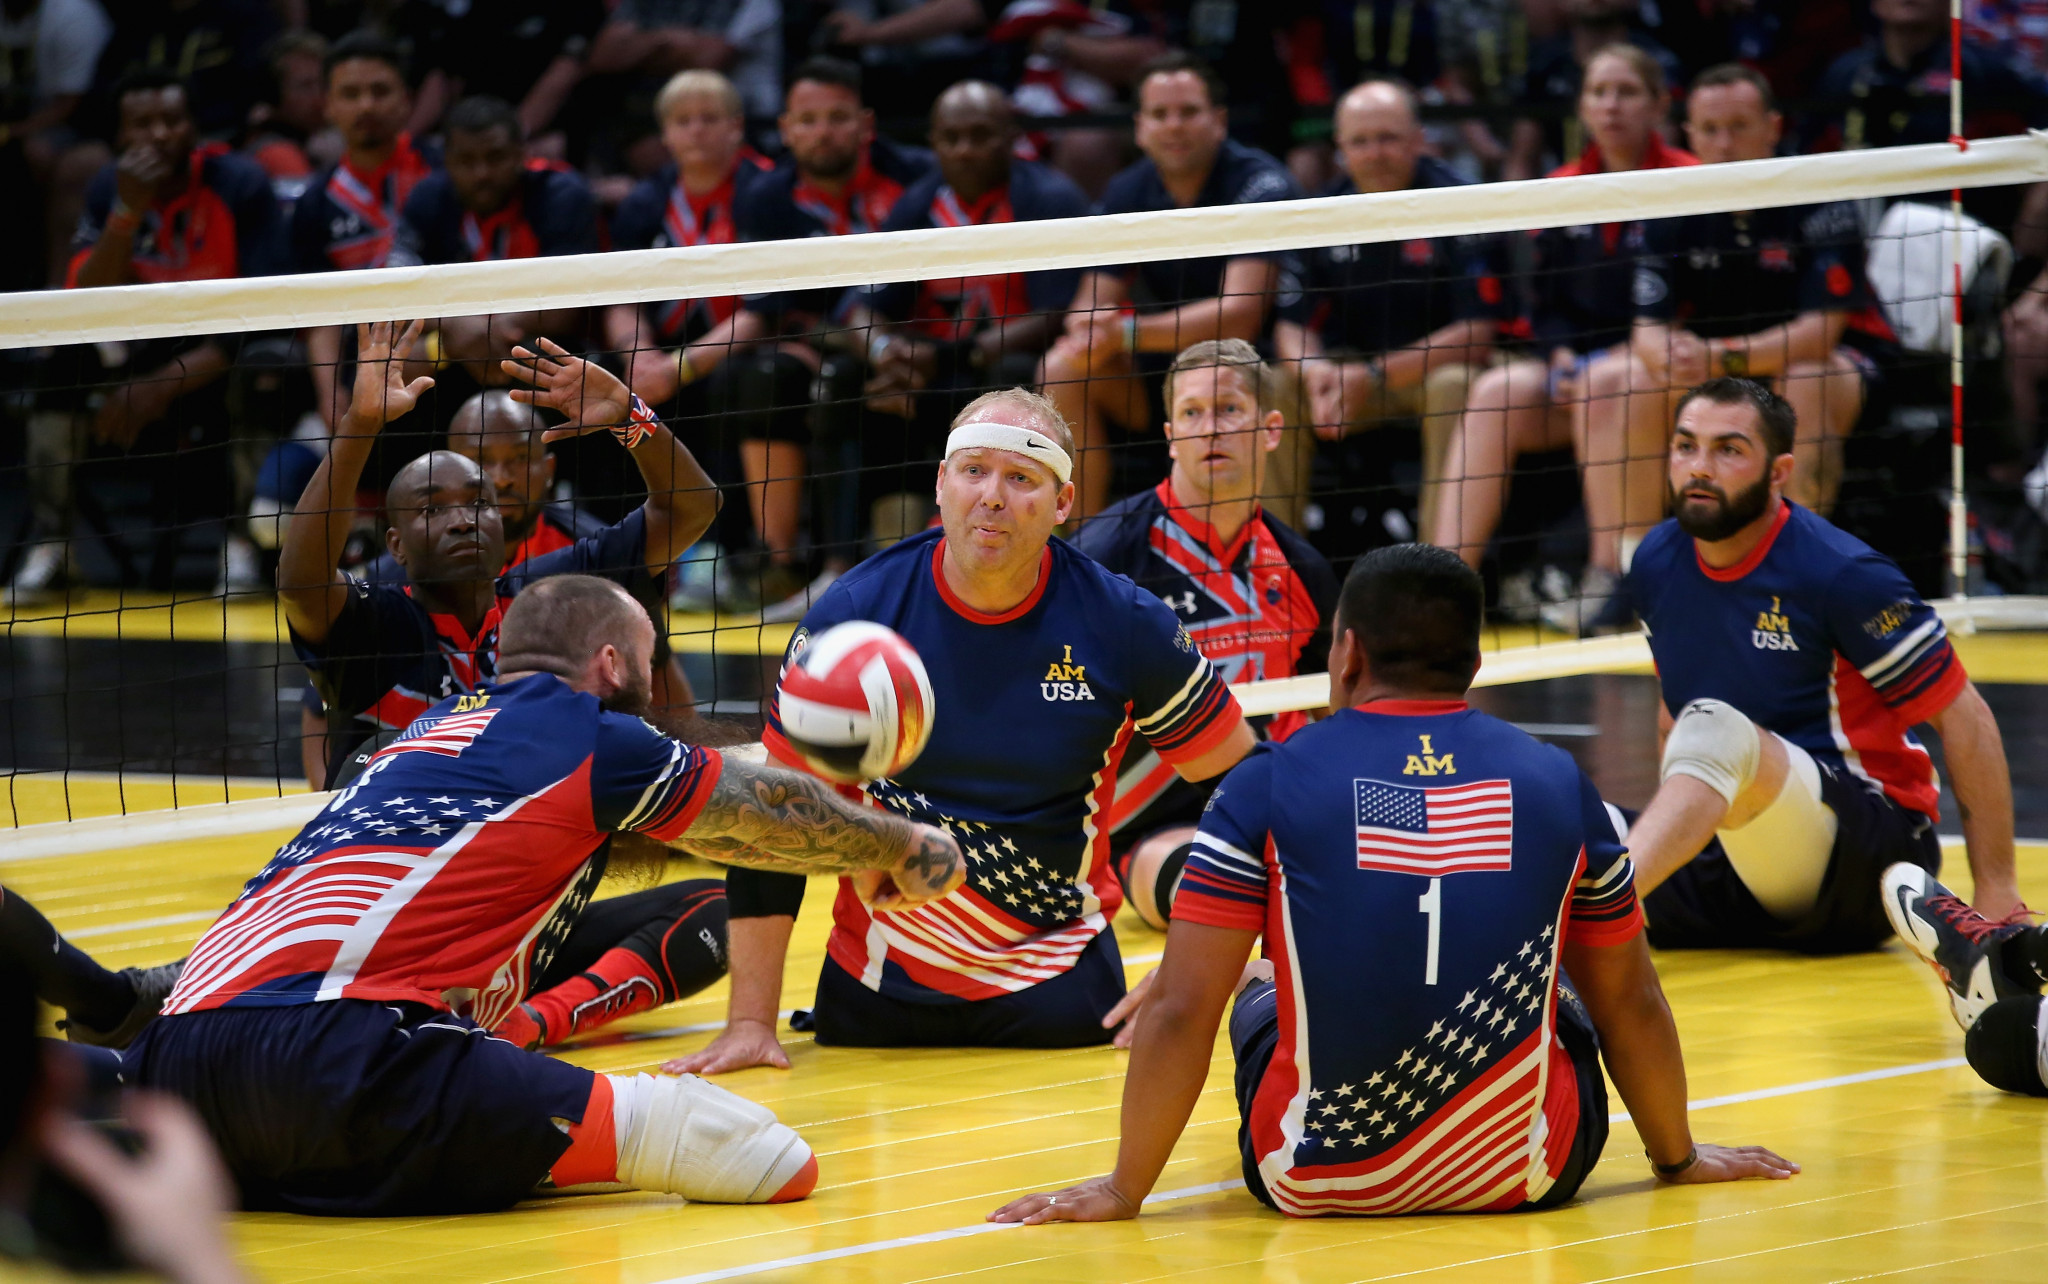 The Invictus Games in The Hague will take place in May and June next year ©Getty Images